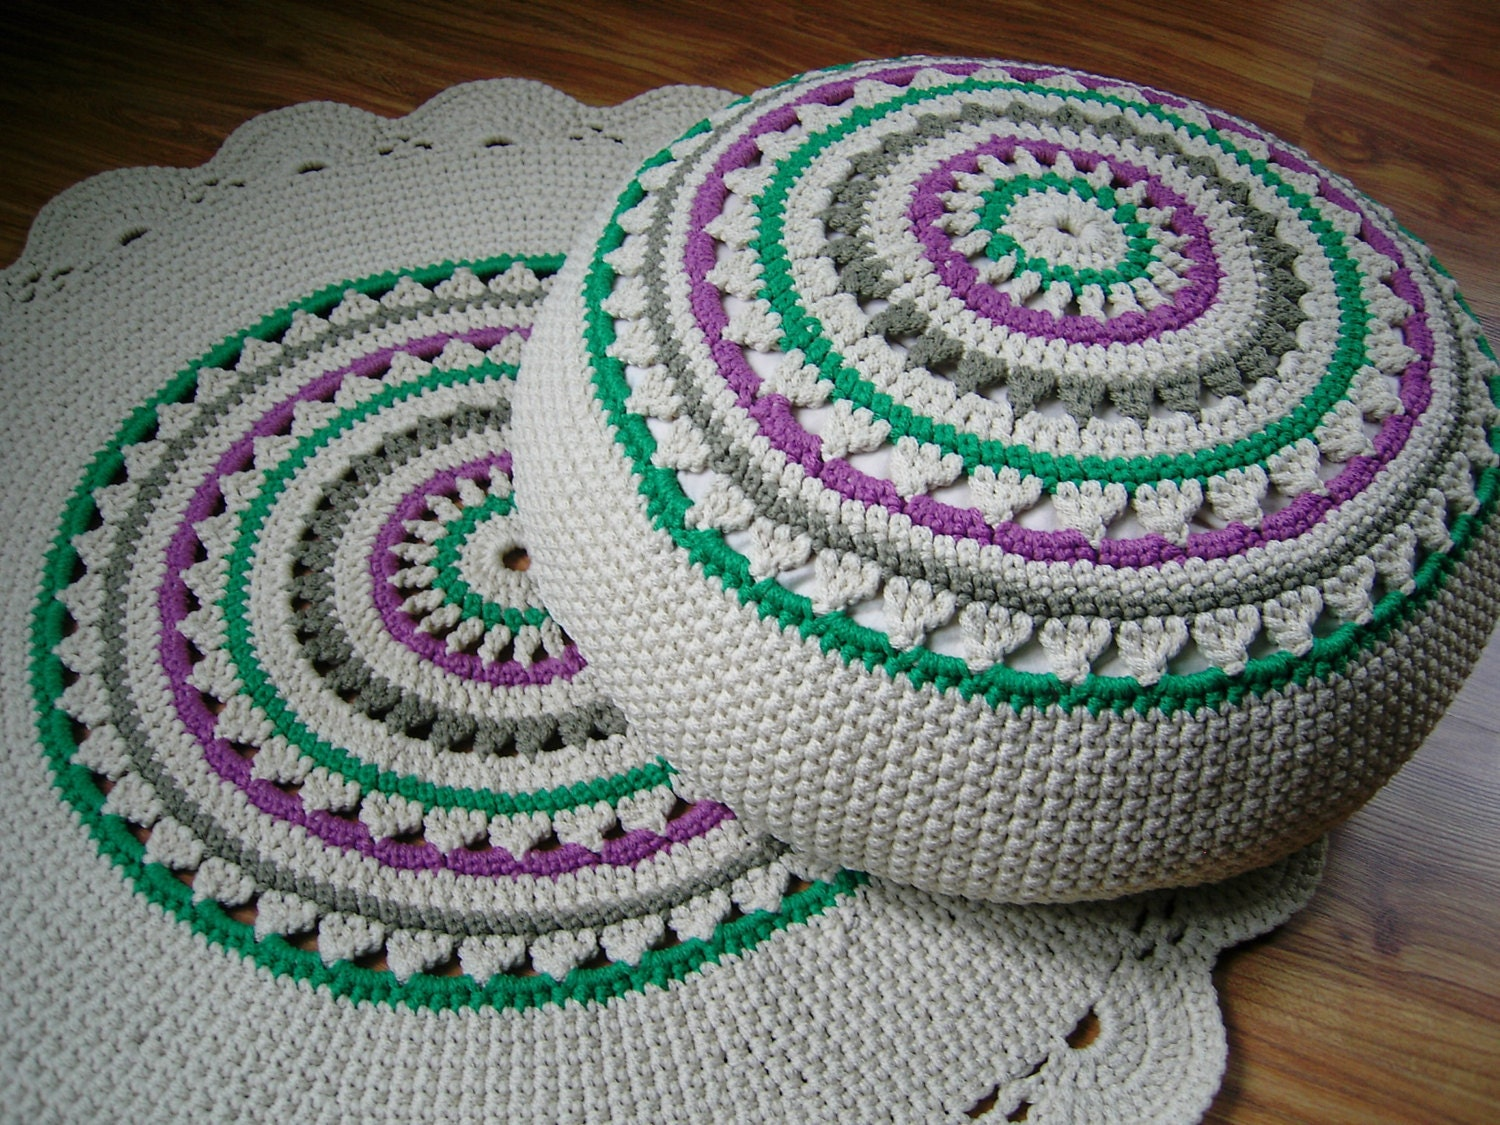 Crochet Pouf / Ottoman / Floor Cushion / Eco by CrochetFolkArt